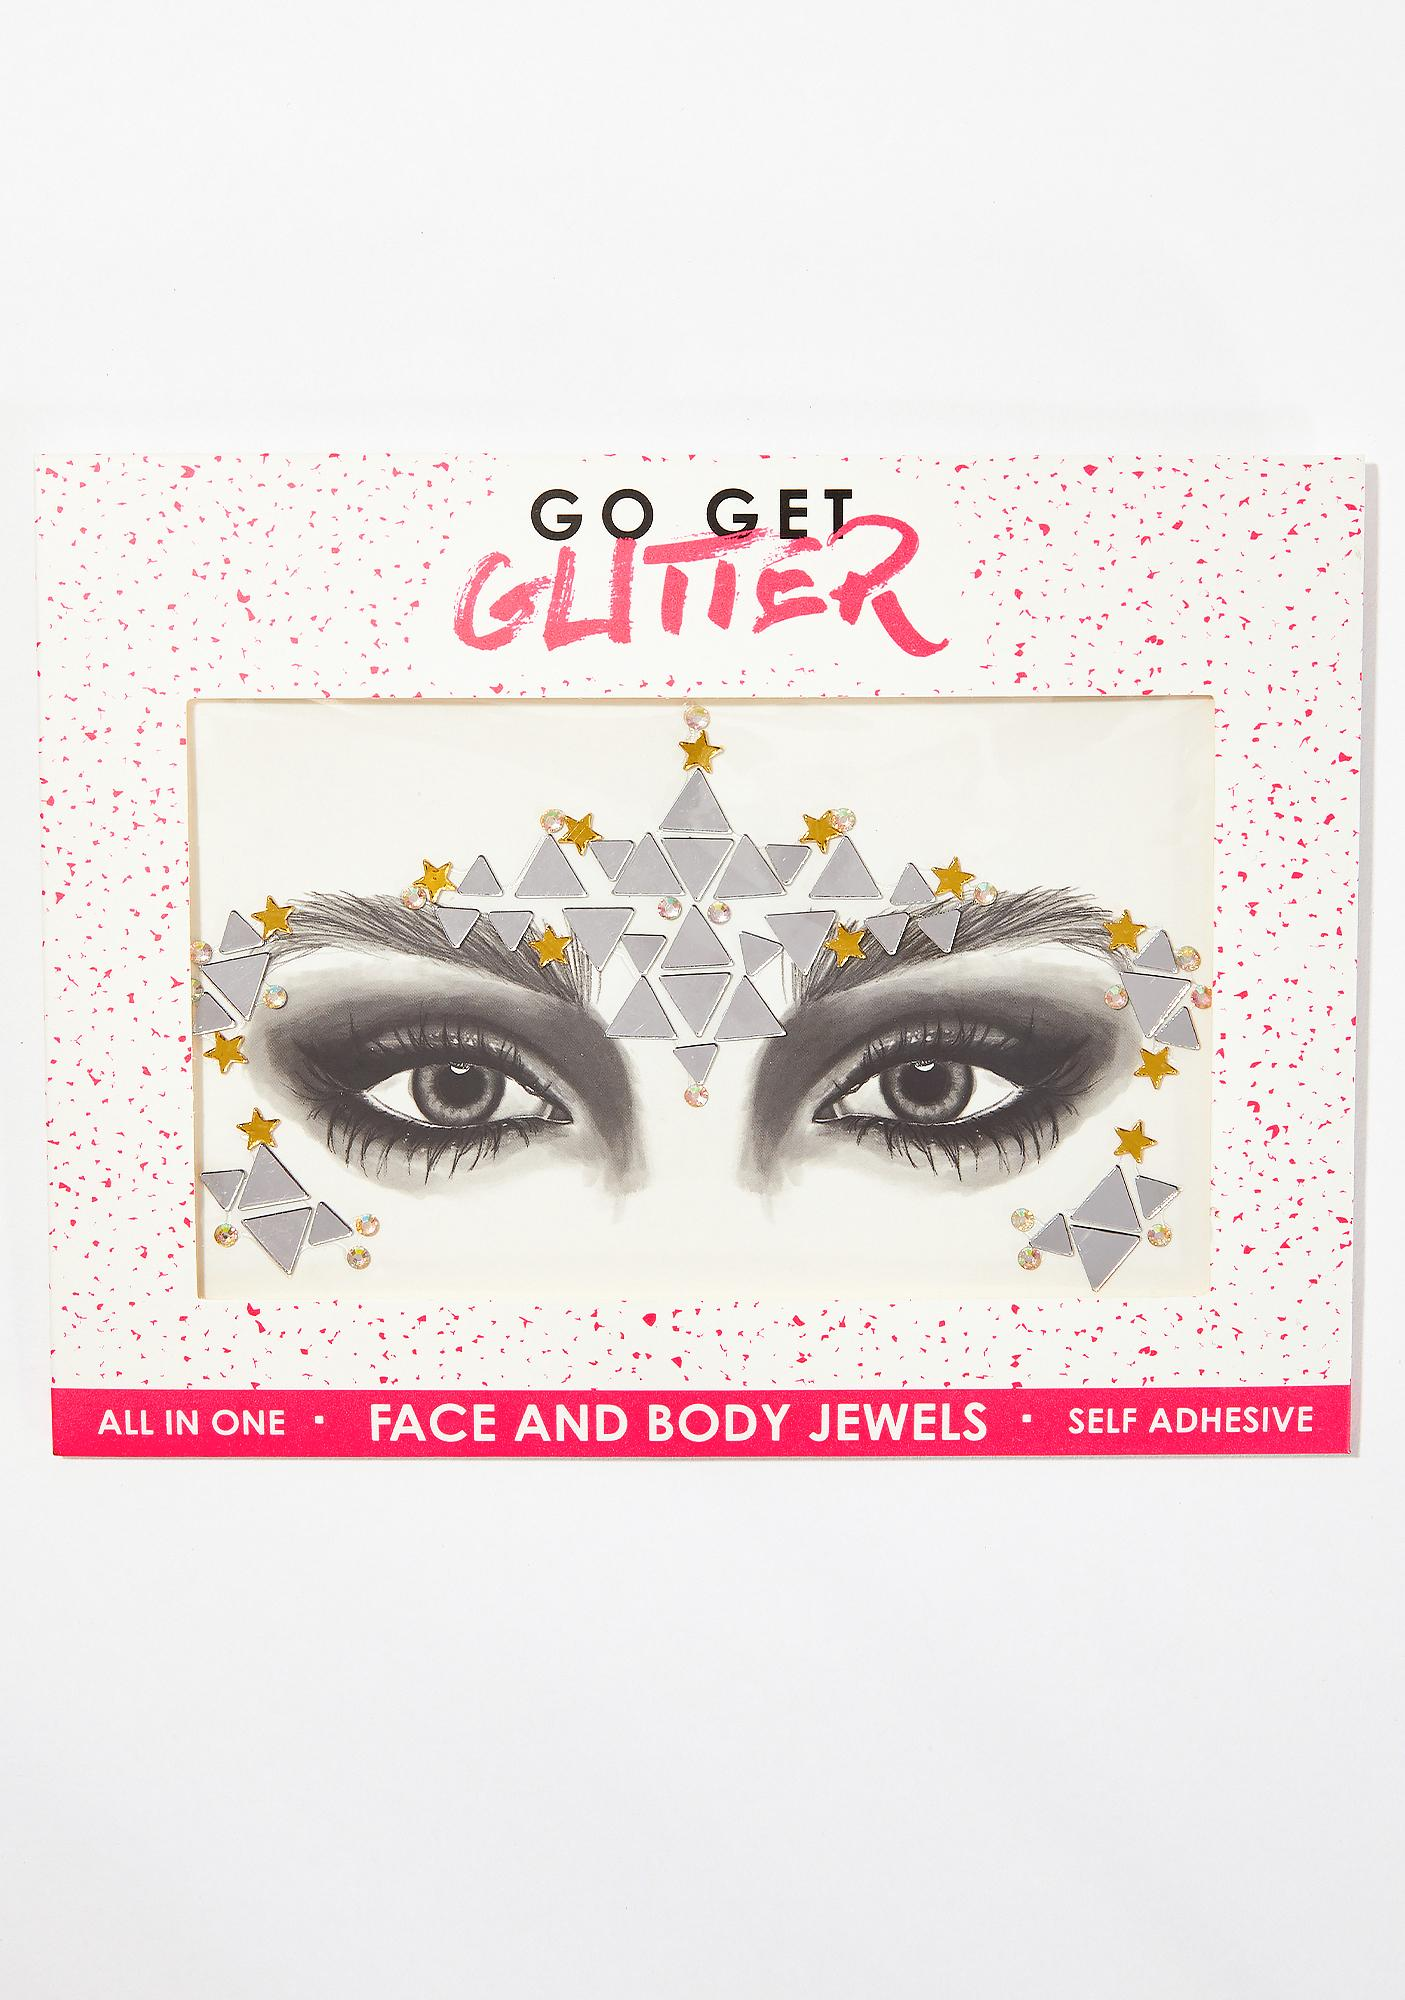 Go Get Glitter Mirror Maze Face Jewels